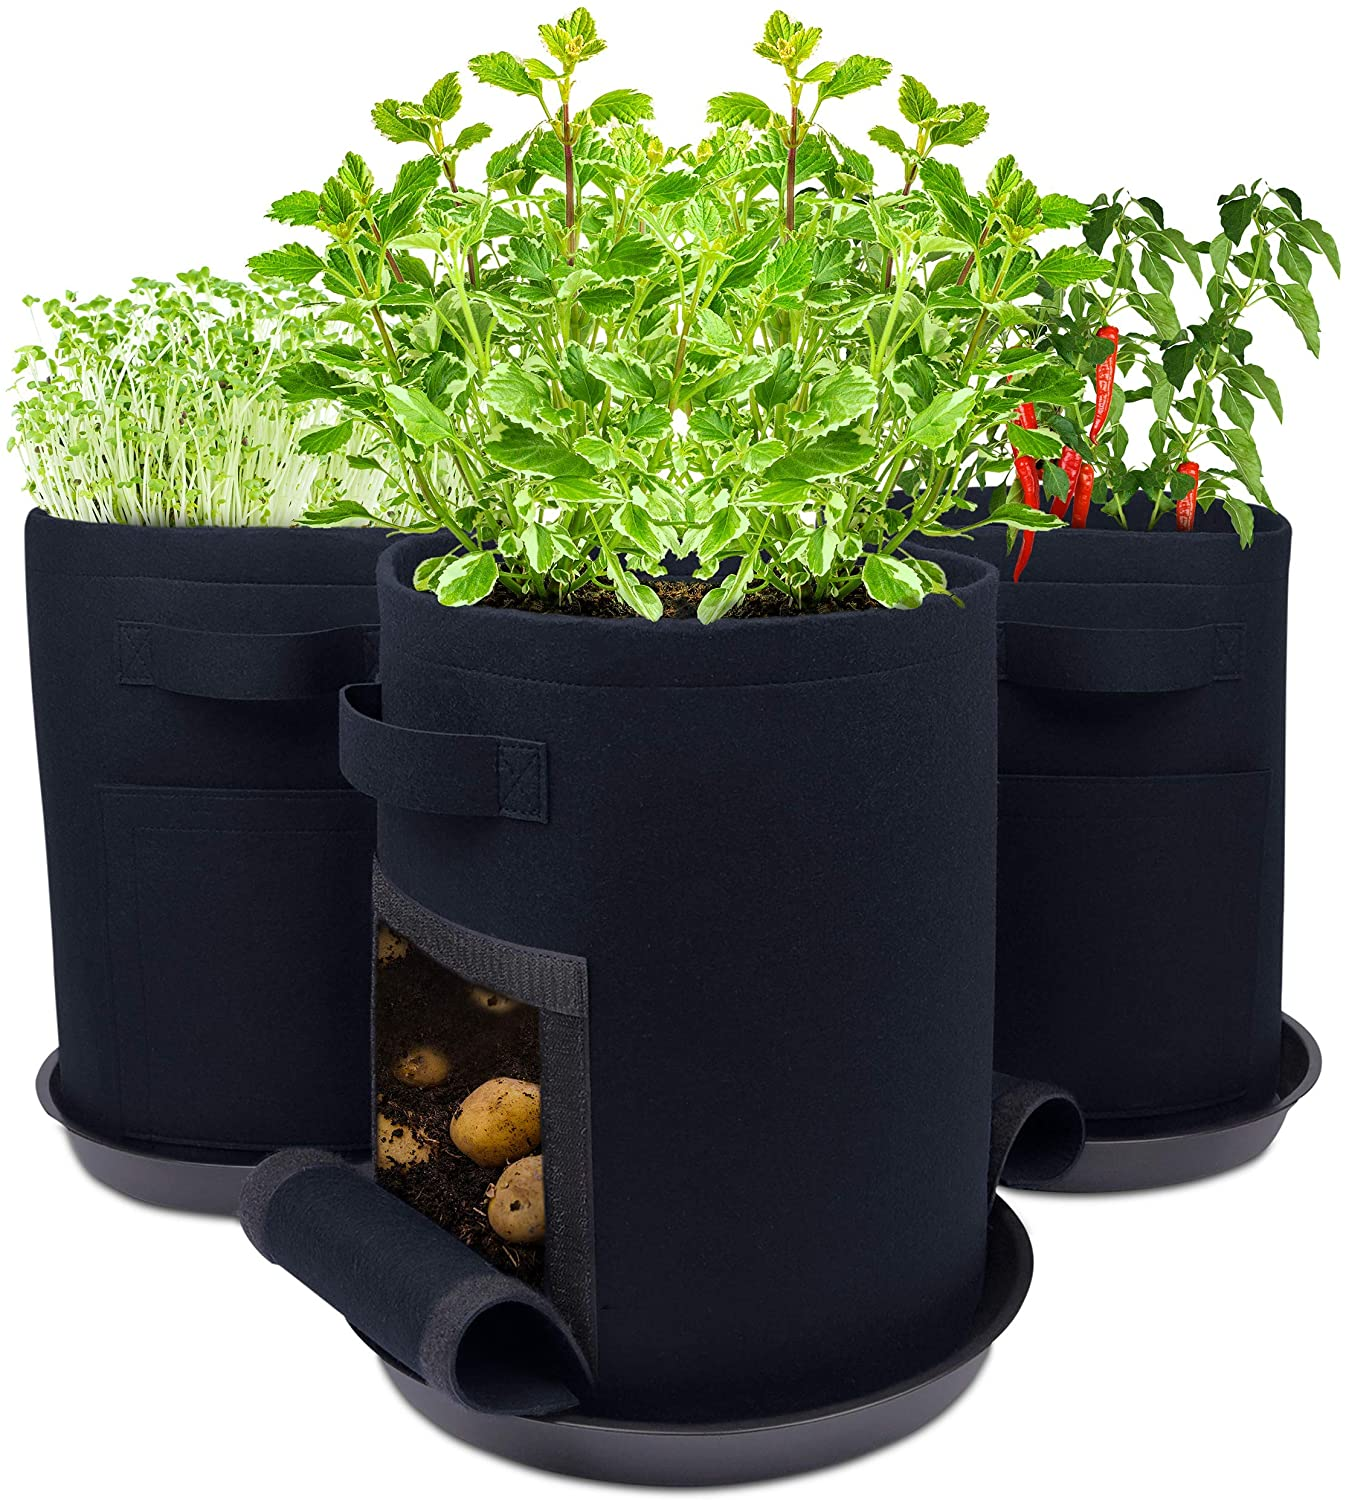 EverBounty Fabric Pots 7 Gallon Grow Bags with Saucer Trays, 2 Windows, Handles - 3-Pack-Blue - Extra Thick 400GSM Breathable Garden Container Planter - Grow Delicious Potatoes & Vegetables